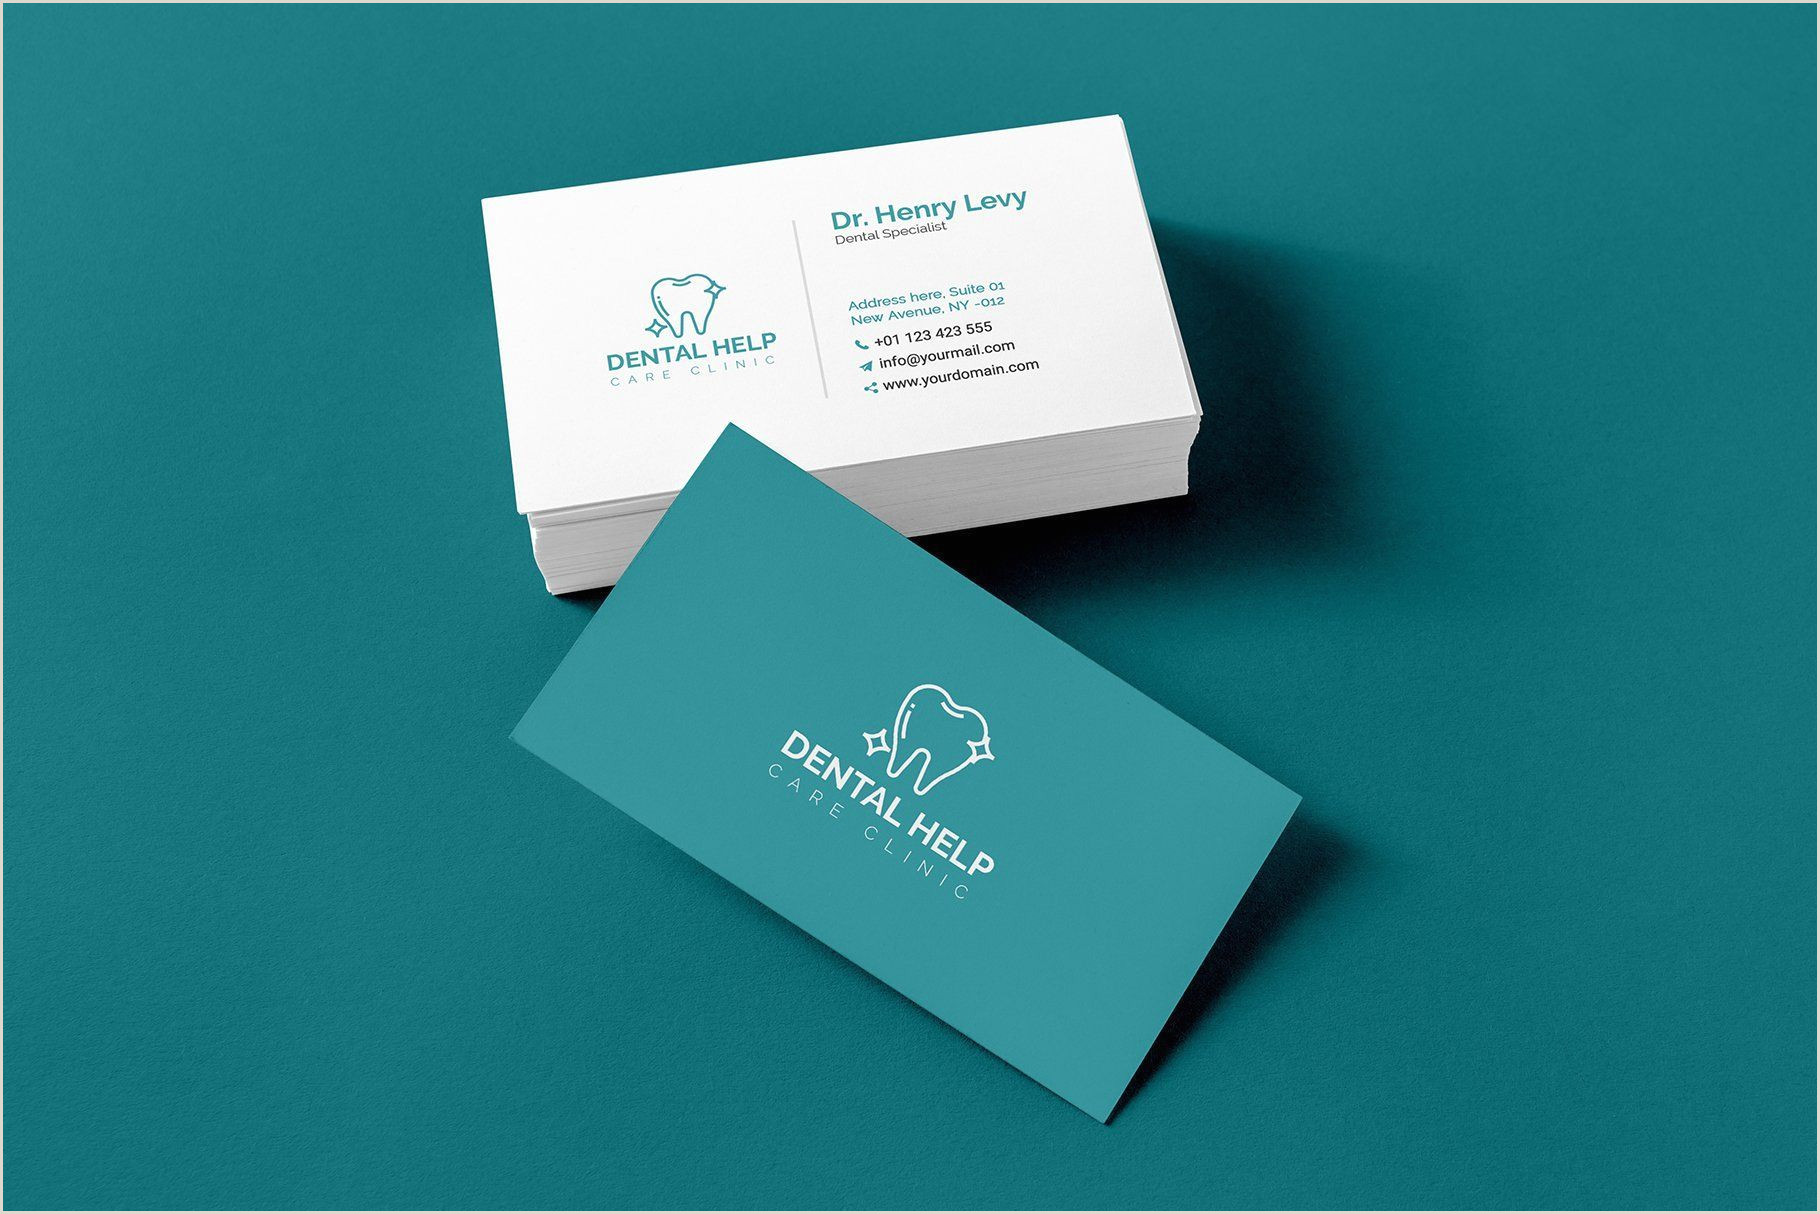 Personal Business Cards Samples Dentist Business Card Templates In 2020